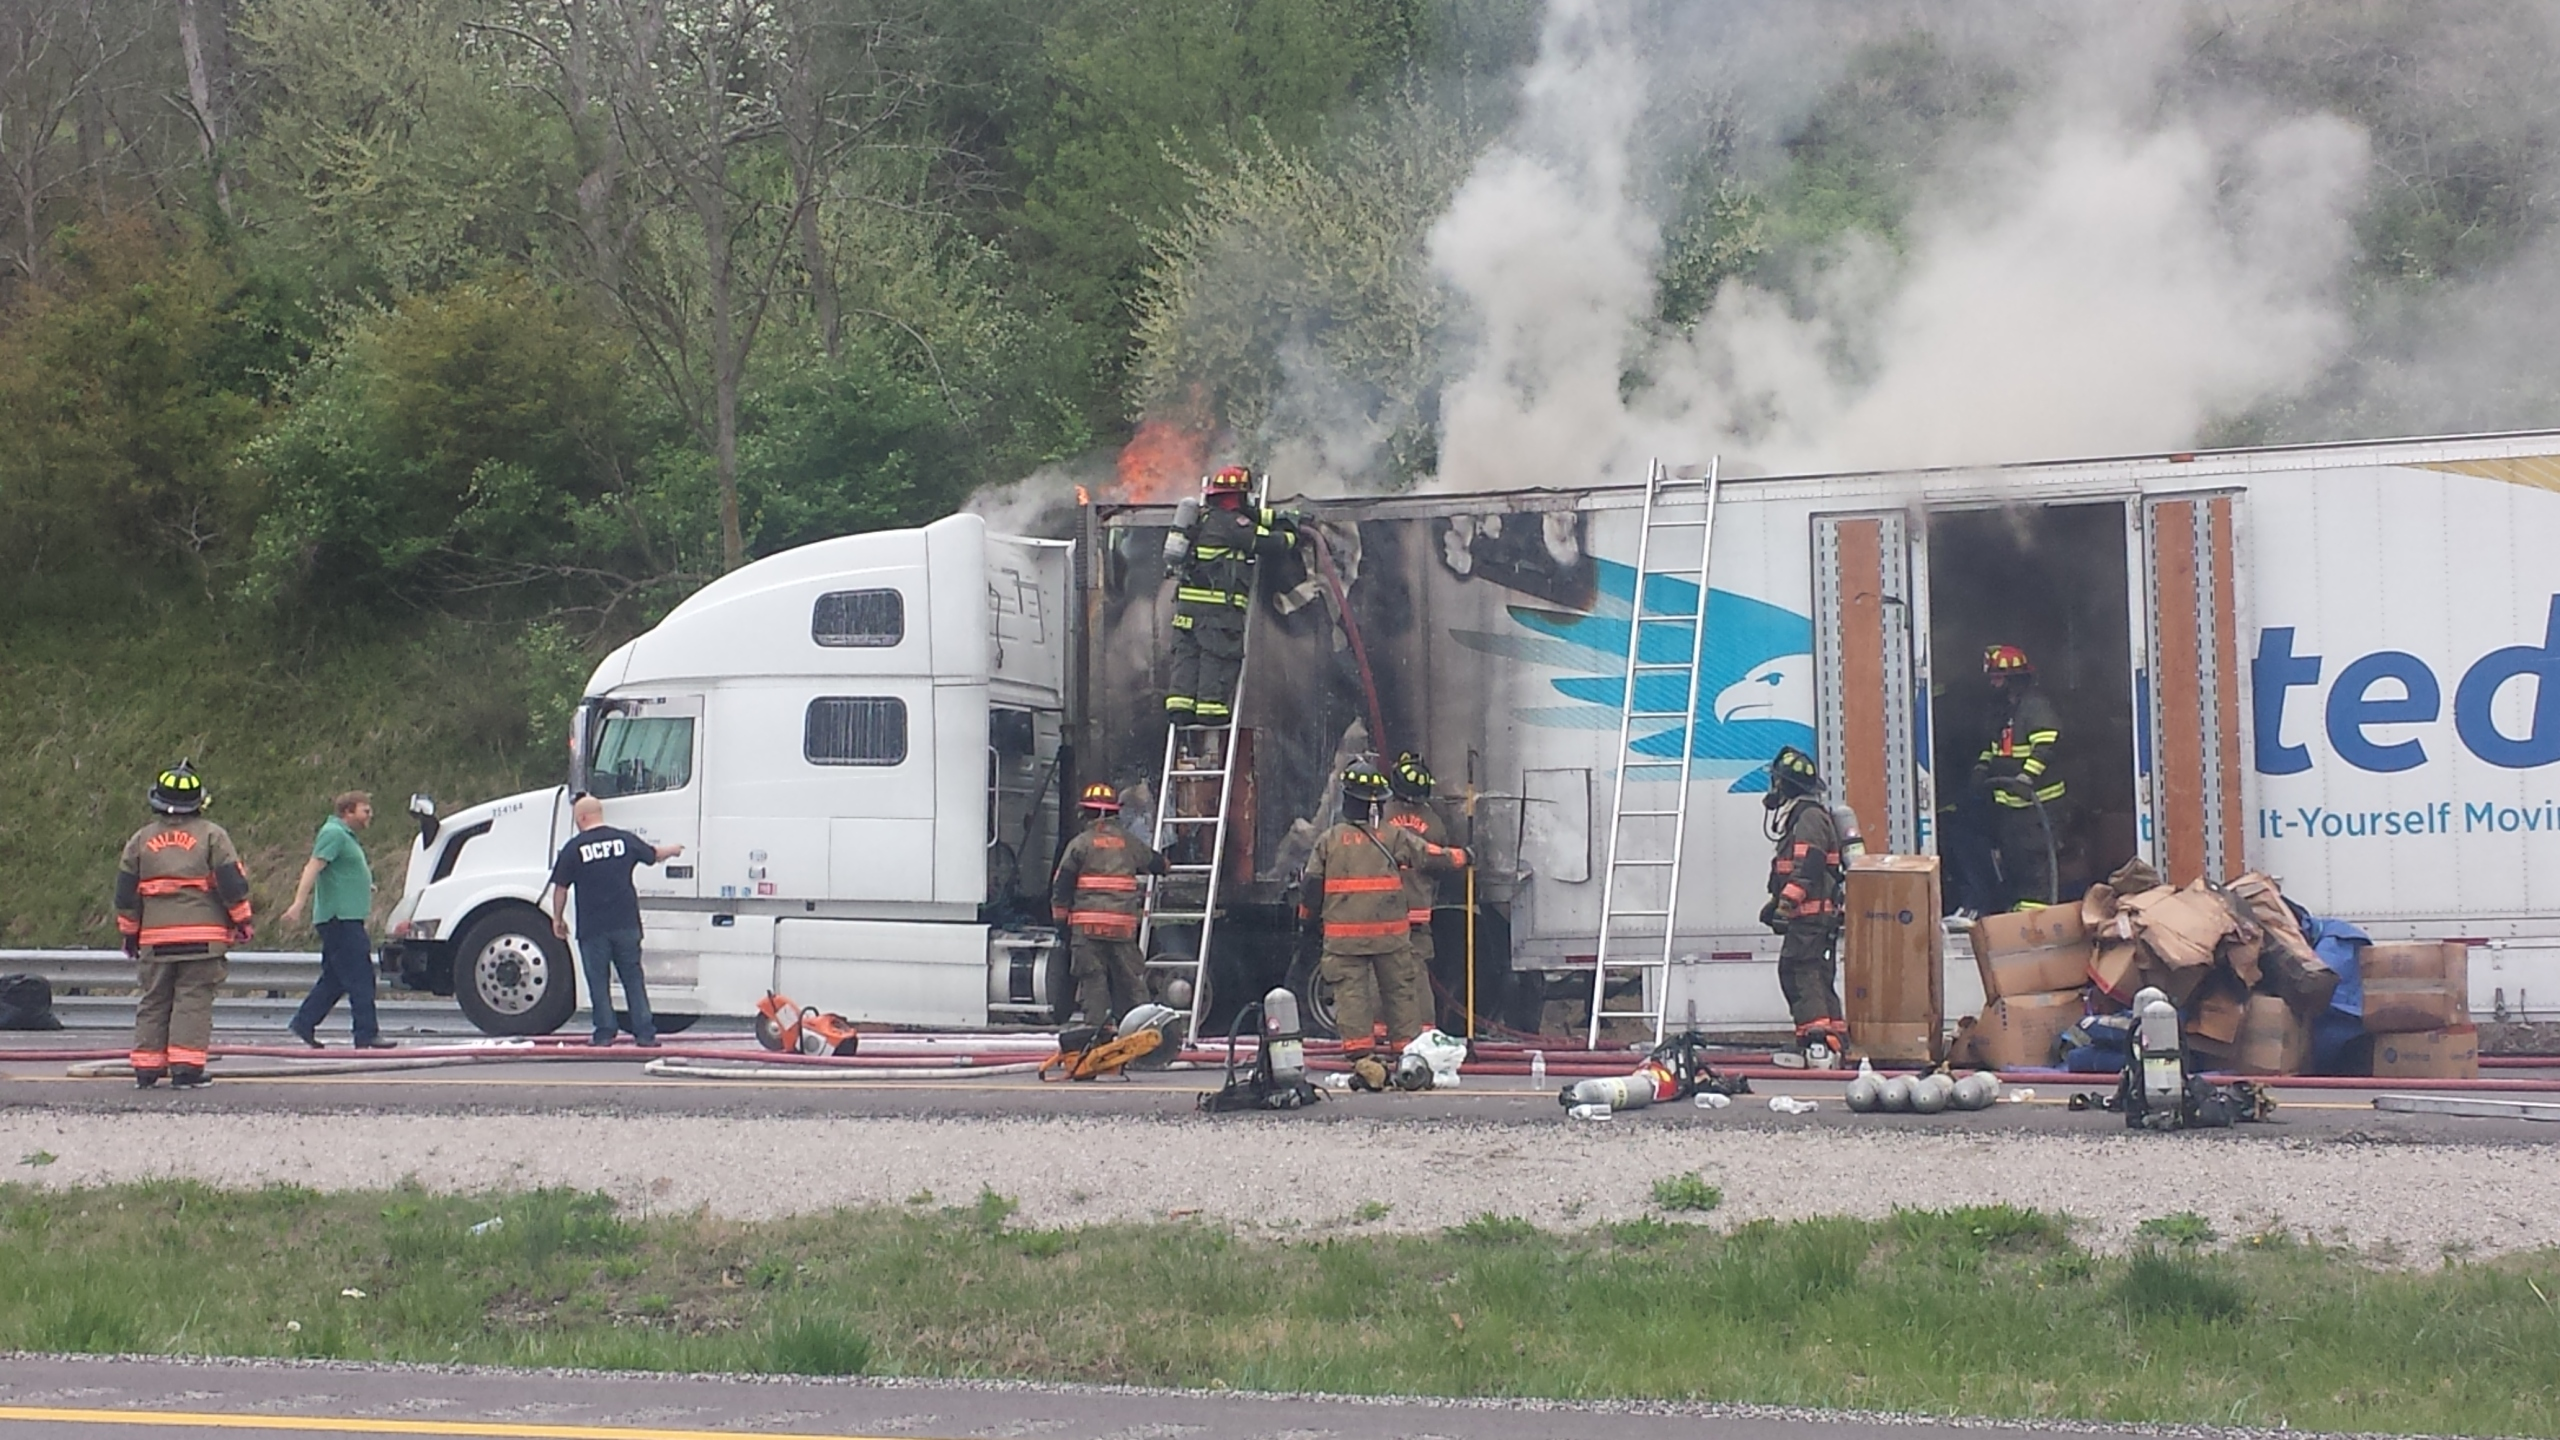 Tractor trailer fire on I-64 near Milton exit